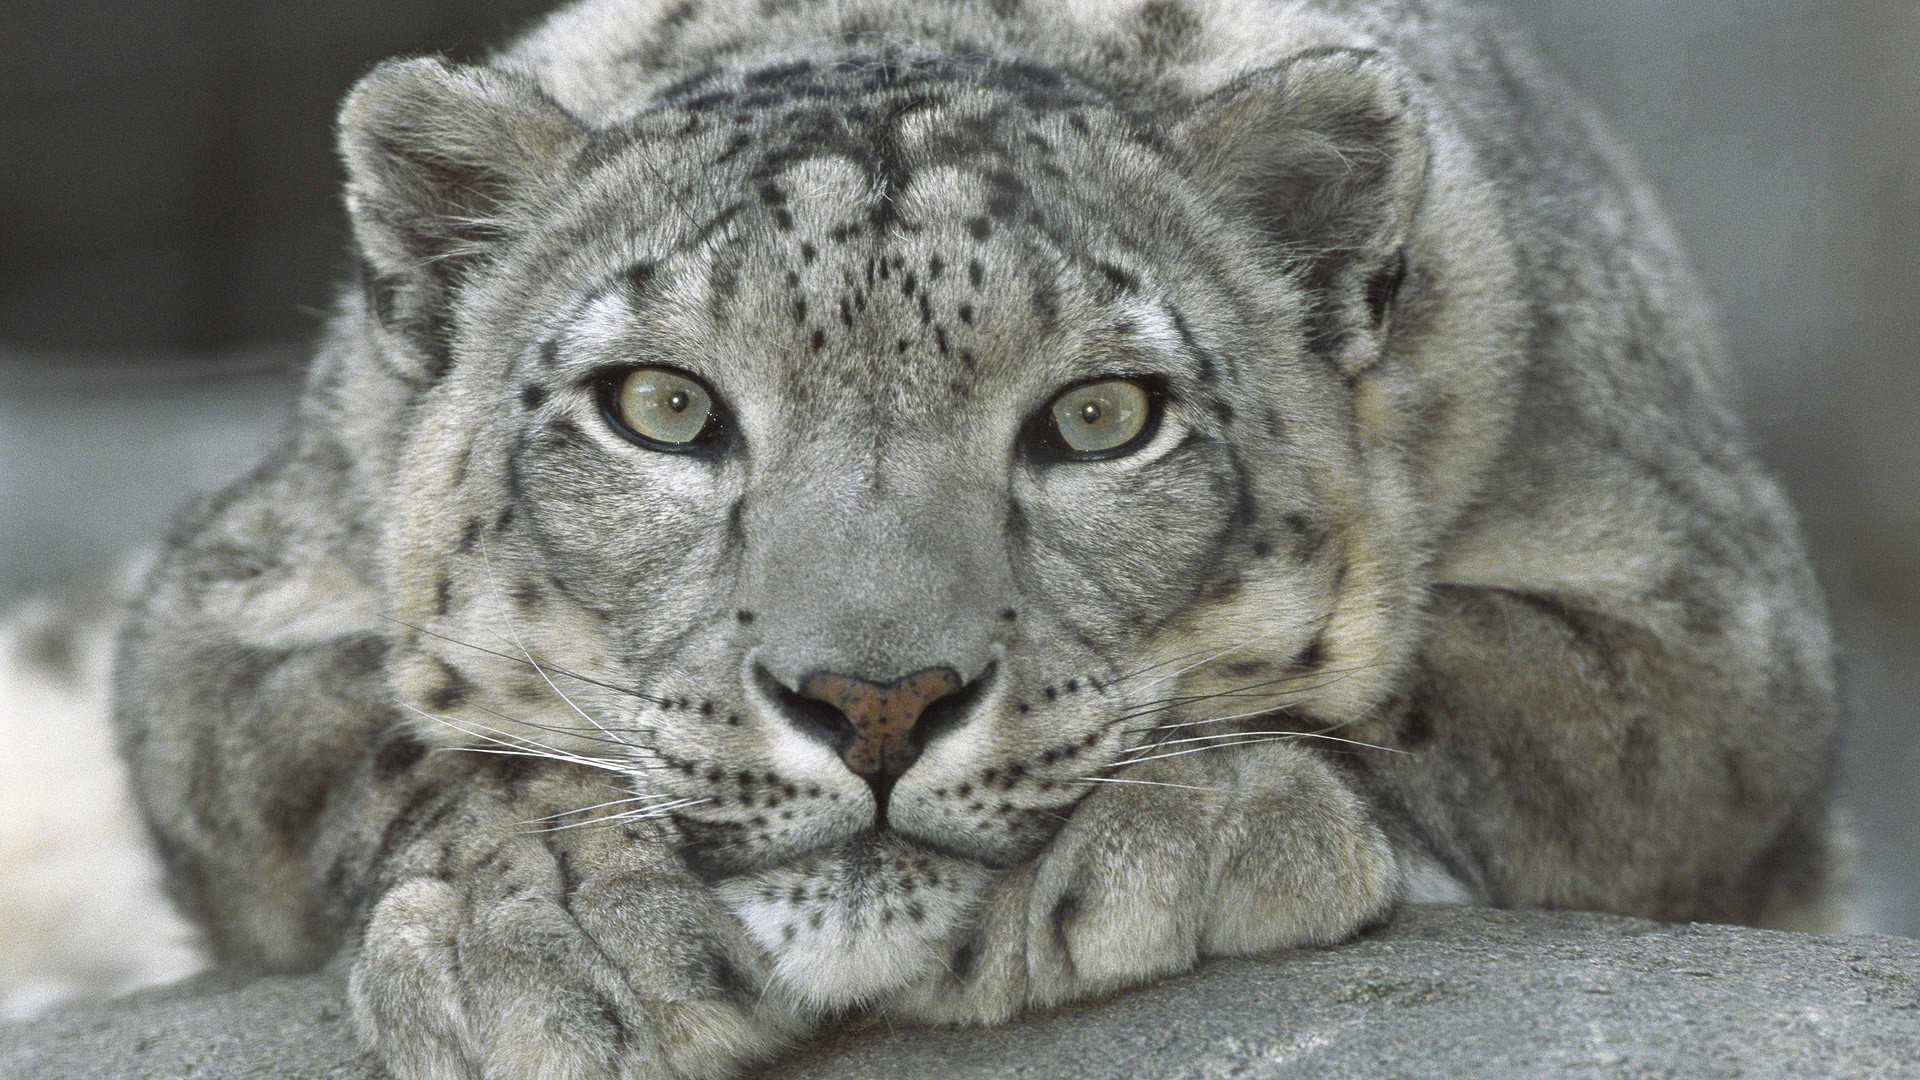 Download 1080p Snow Leopard PC wallpaper ID:34515 for free